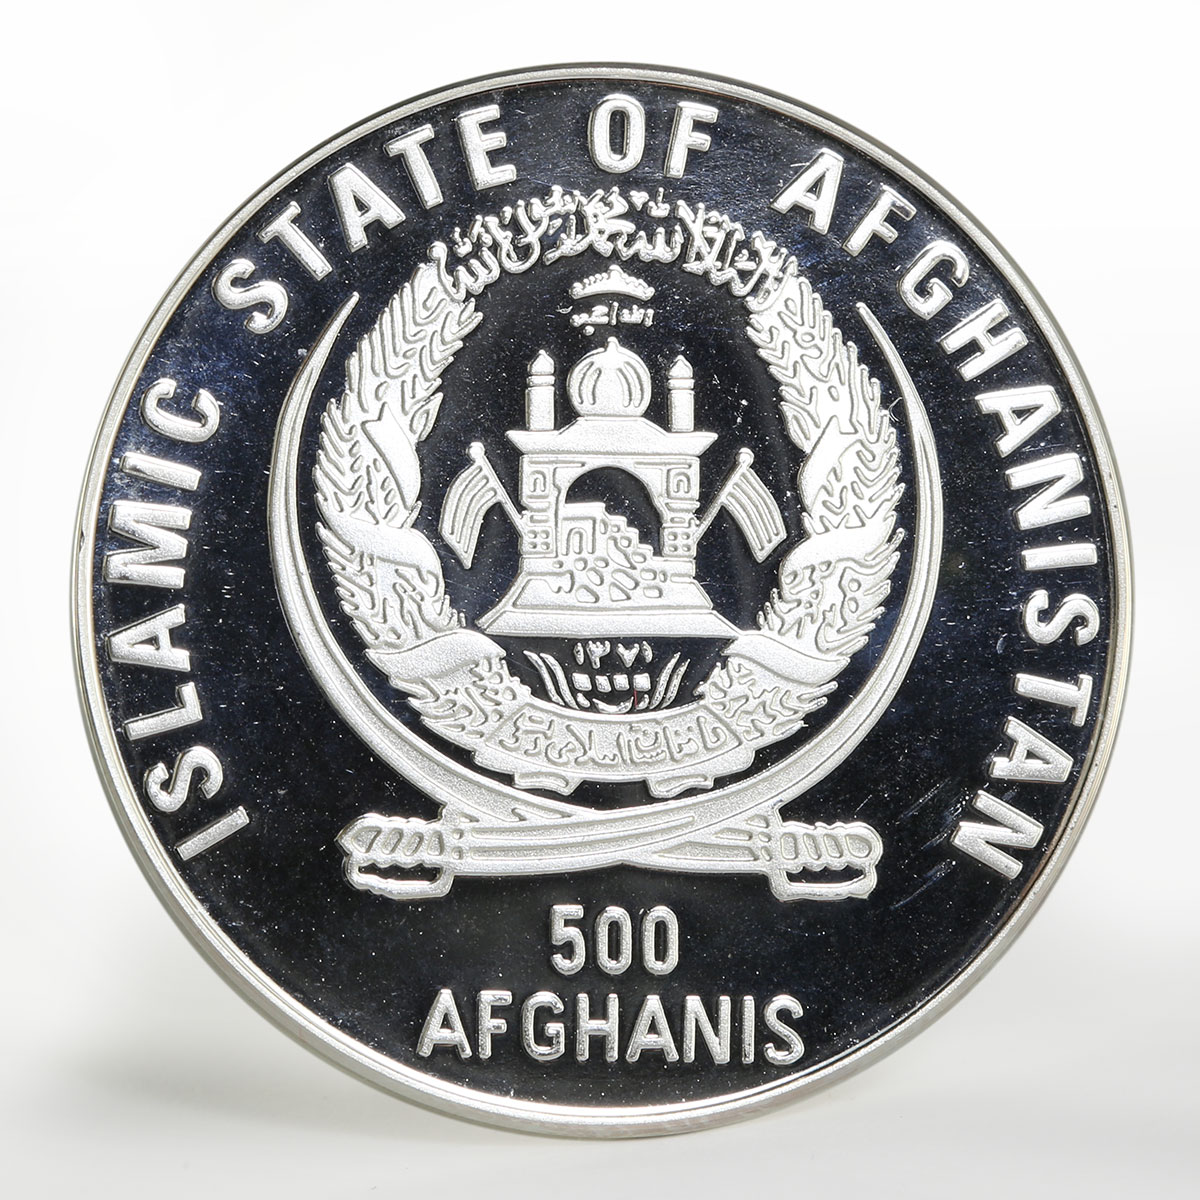 Afghanistan 500 afghanis Marco Polo Sheep proof silver coin 1998